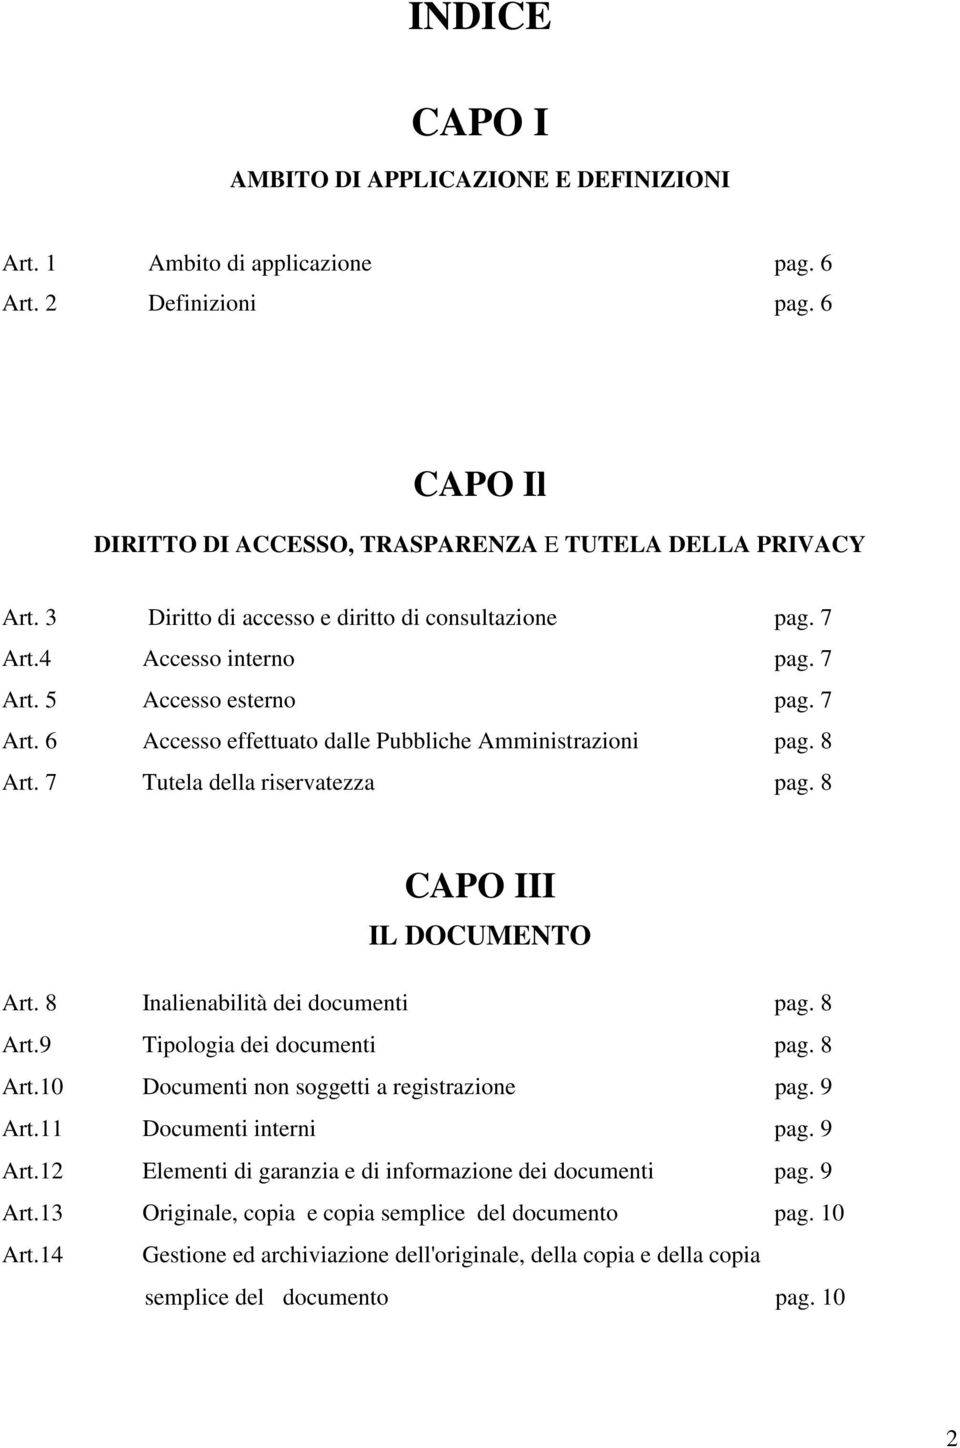 7 Tutela della riservatezza pag. 8 CAPO III IL DOCUMENTO Art. 8 Inalienabilità dei documenti pag. 8 Art.9 Tipologia dei documenti pag. 8 Art.10 Documenti non soggetti a registrazione pag. 9 Art.